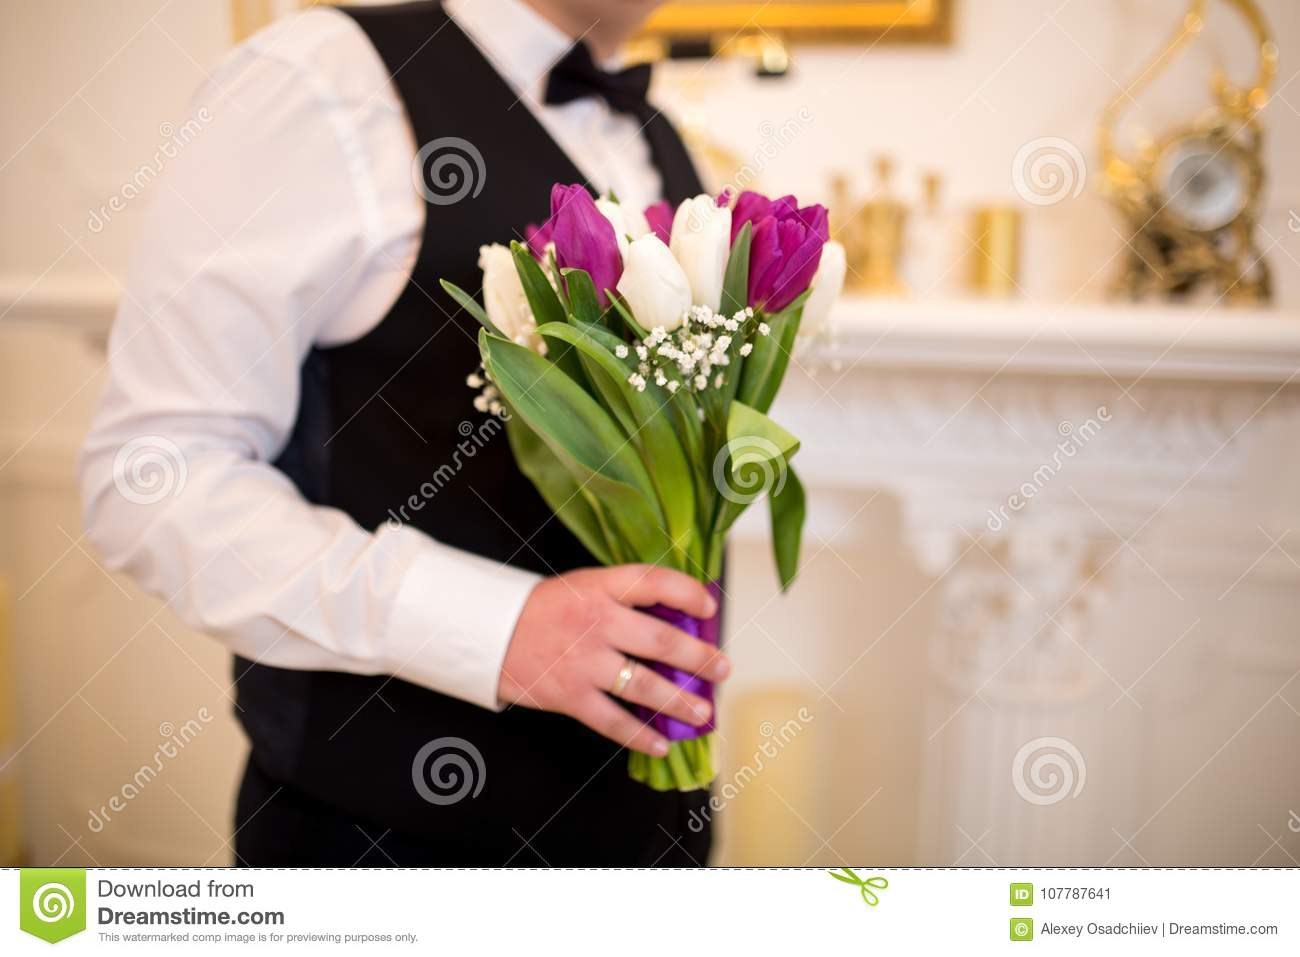 Man with flower bouquet stock image image of branch 107787641 download man with flower bouquet stock image image of branch 107787641 izmirmasajfo